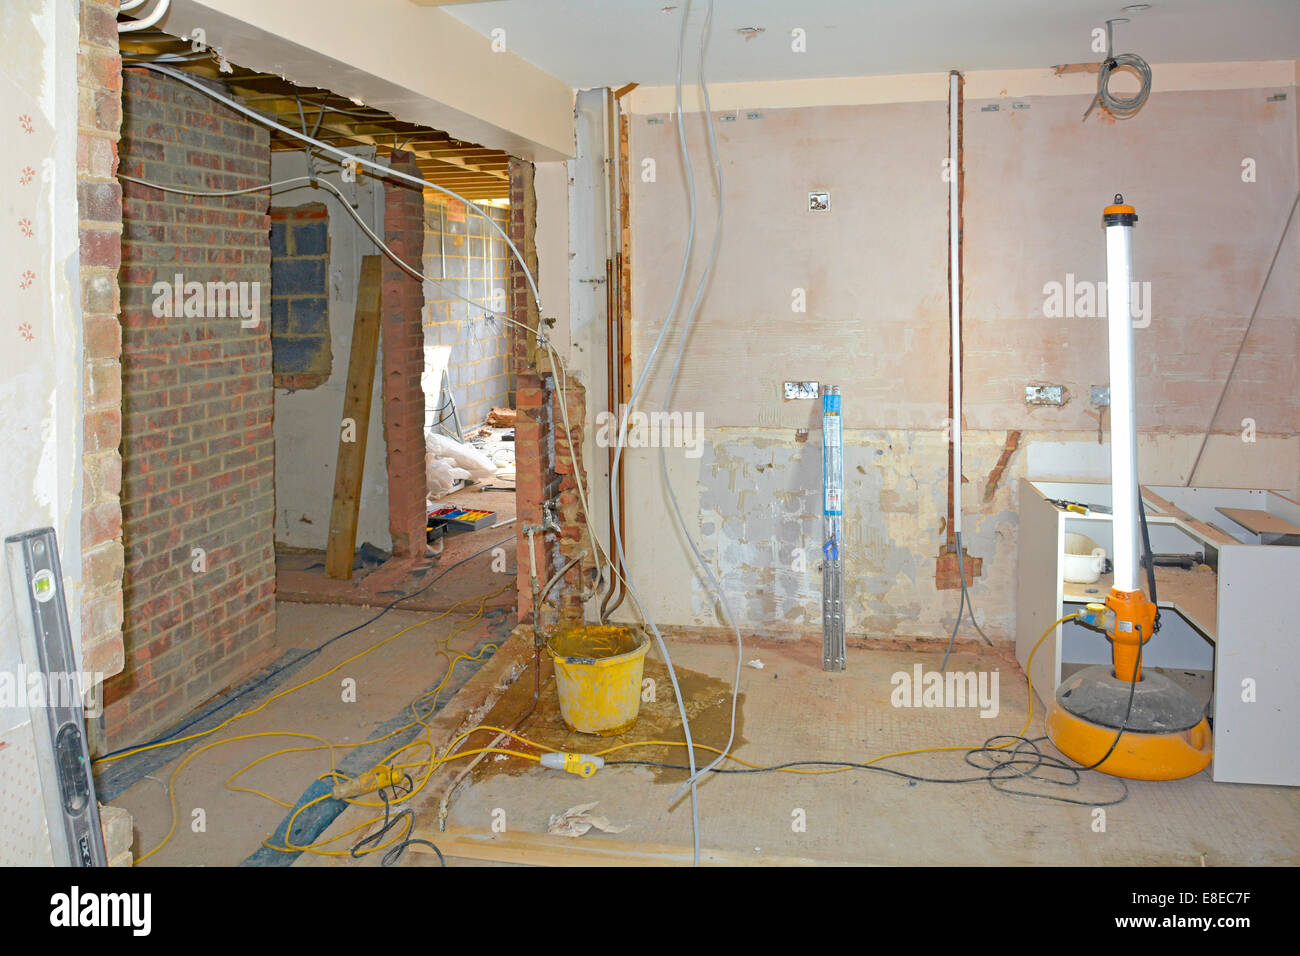 House extension detached property work in progress with interior alterations being made to existing rooms Essex - Stock Image